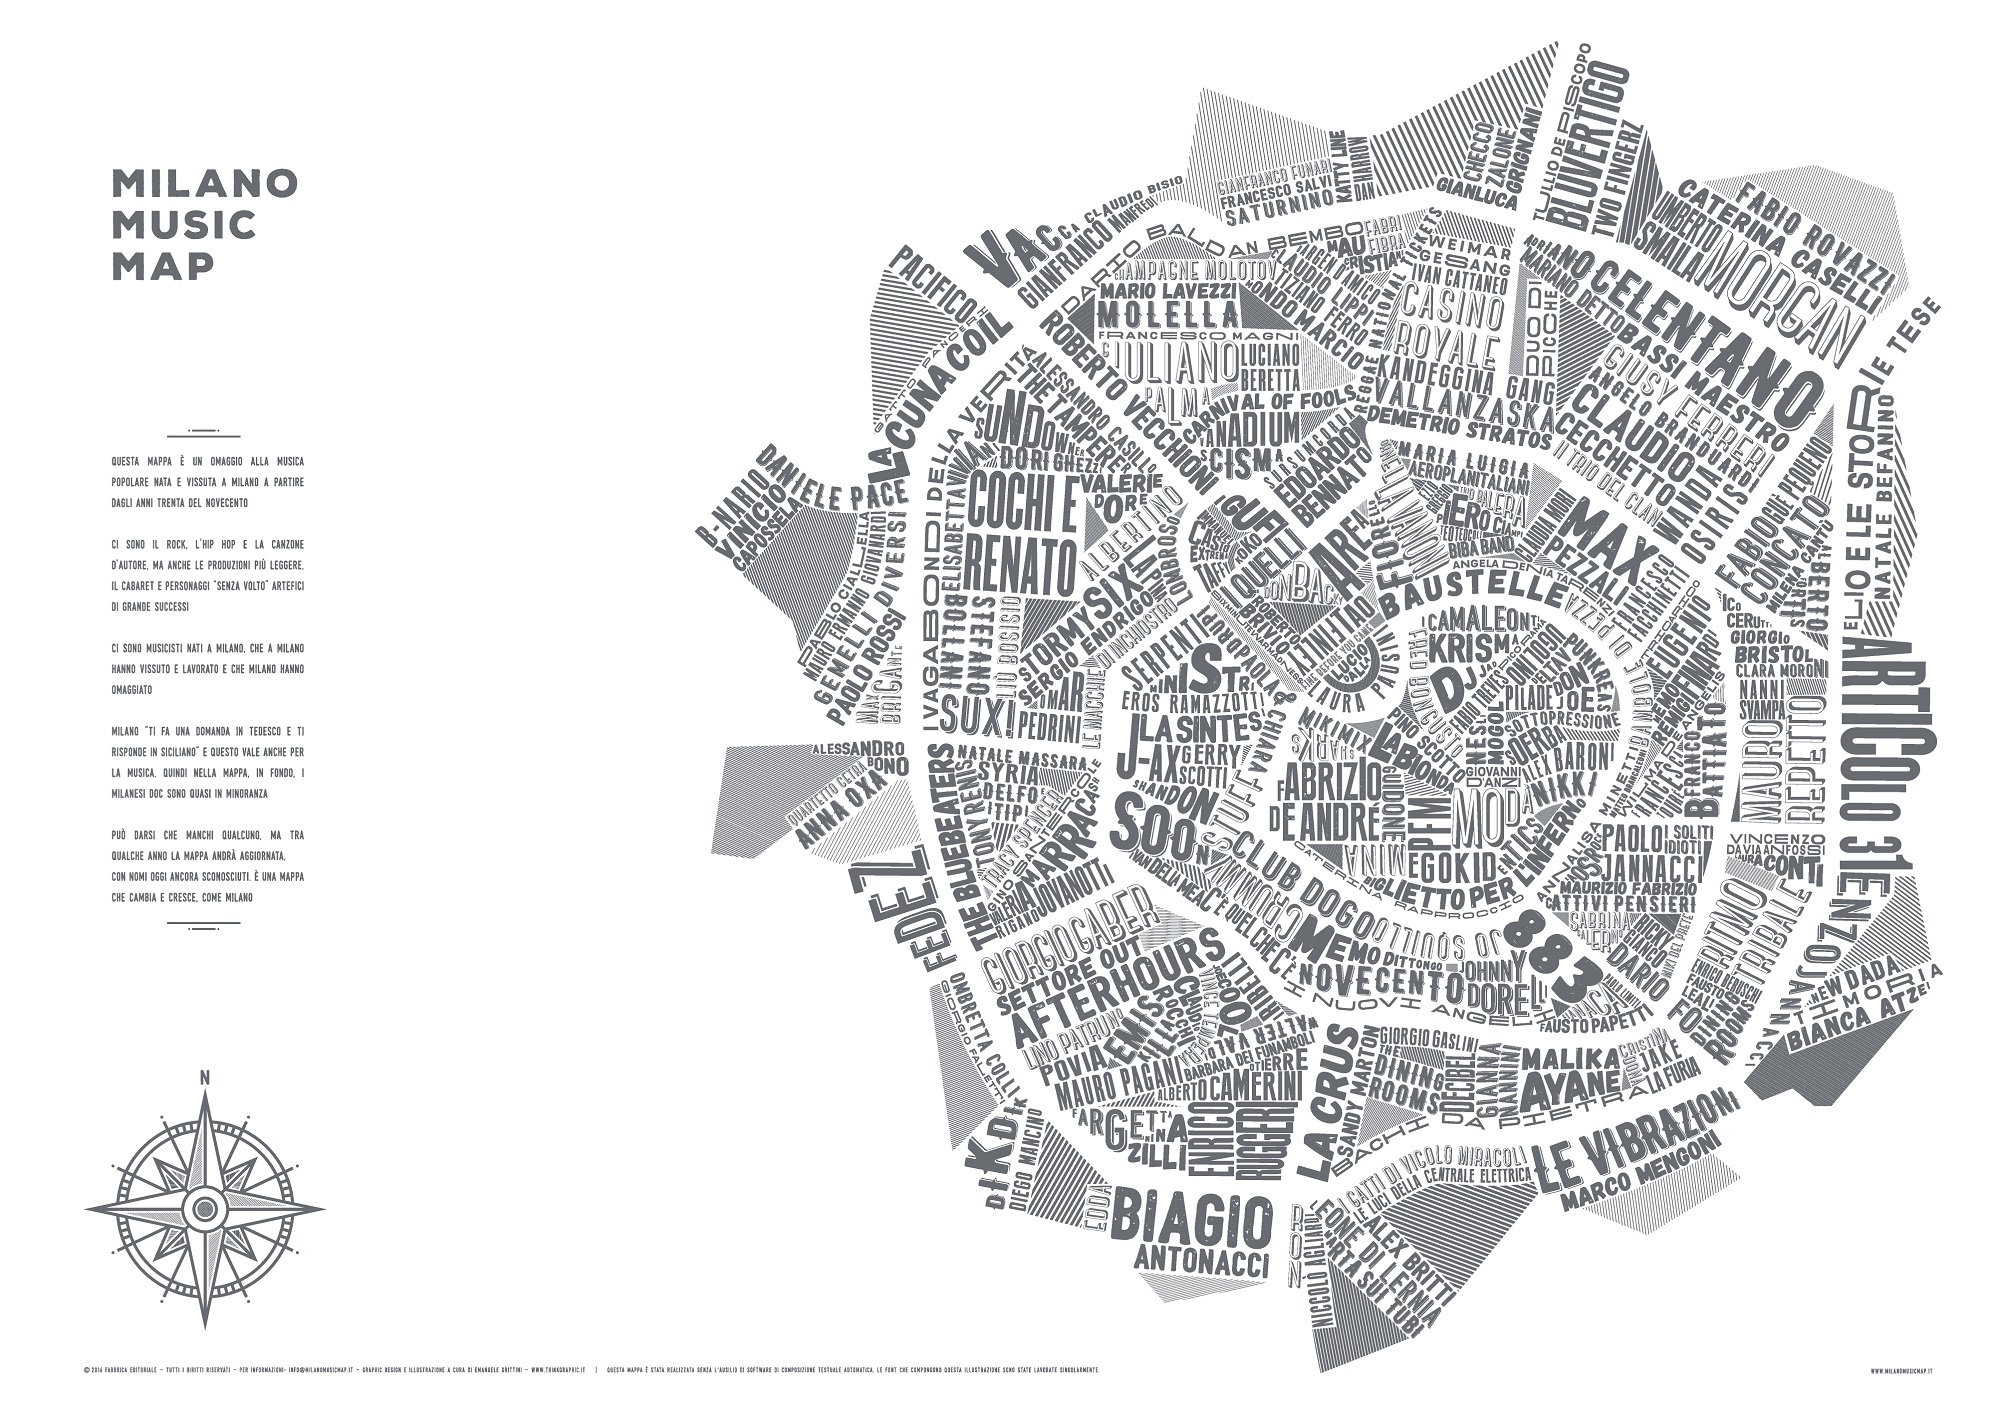 milano-music-map-primosito